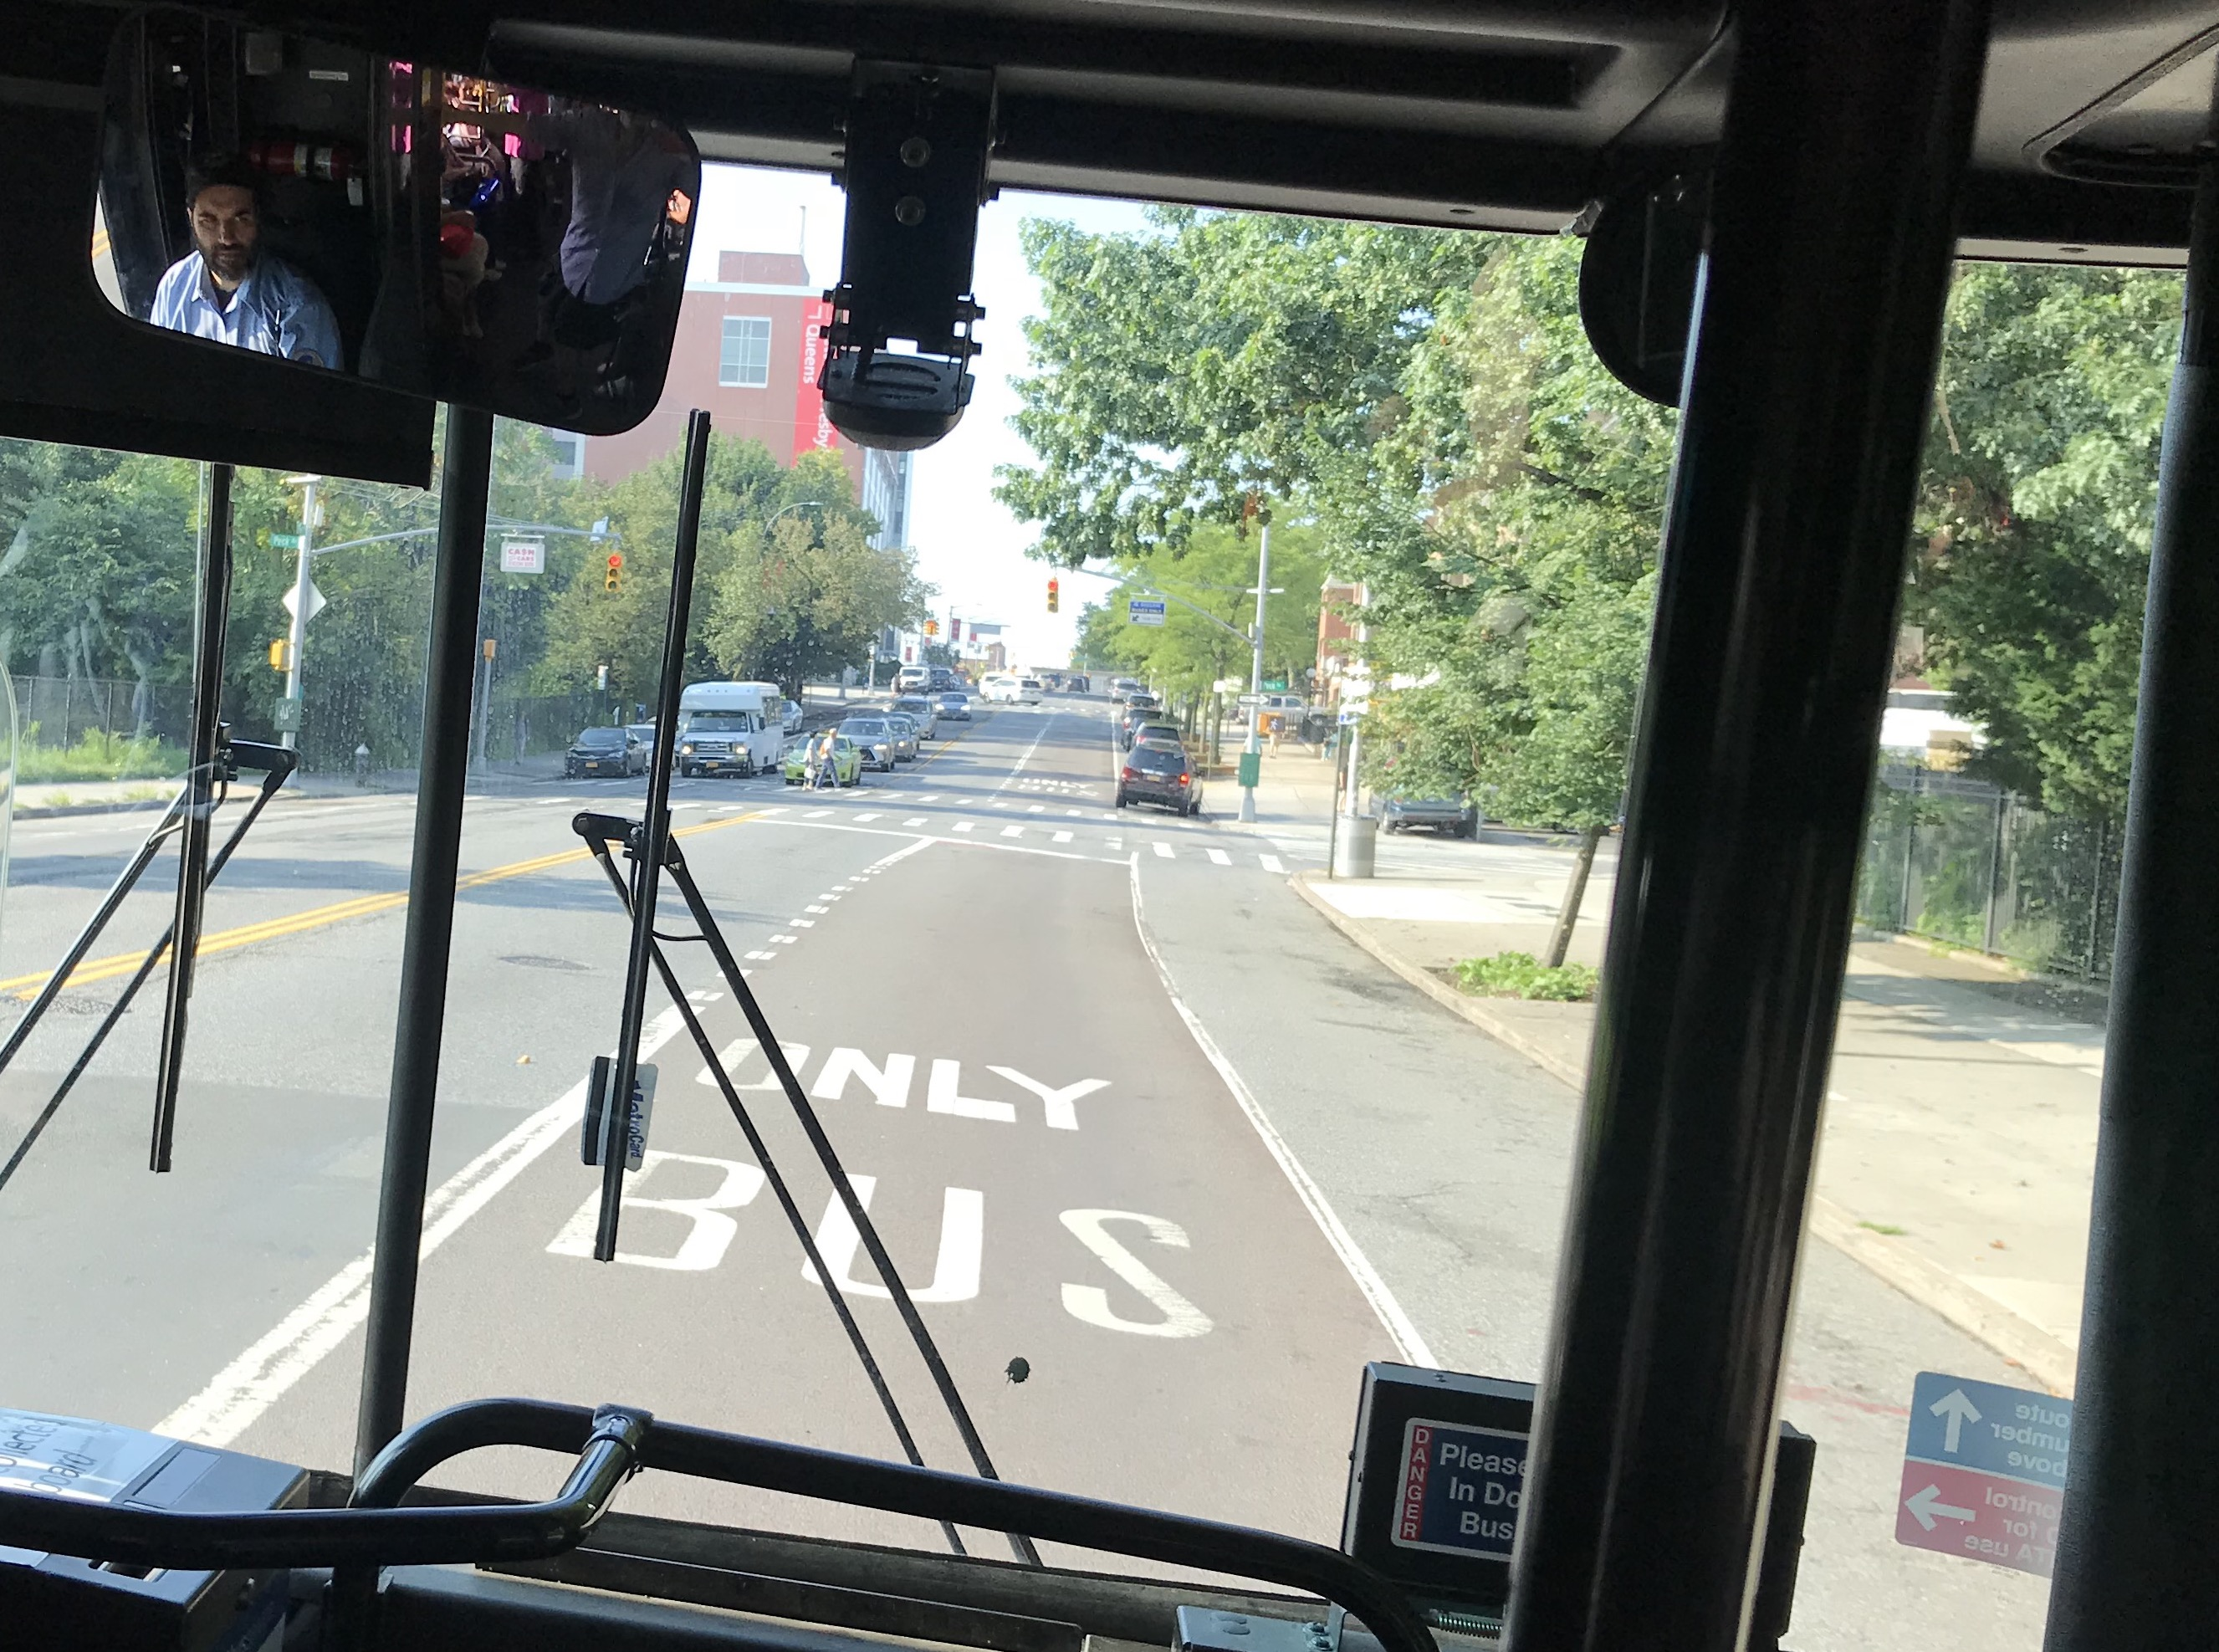 Spot Check: The Q44 Bus Offers Signs of Hope for Bus Service ... on q17 bus map, q83 bus map, q20a bus map, q76 bus map, q104 bus map, q112 bus map, q55 bus map, bx21 bus map, q37 bus map, q102 bus map, q20 bus map, bx bus map, nycta bus map, b82 bus map, q84 bus map, q46 bus map, q64 bus map, q58 bus map, q47 bus route map, new york bus route map,